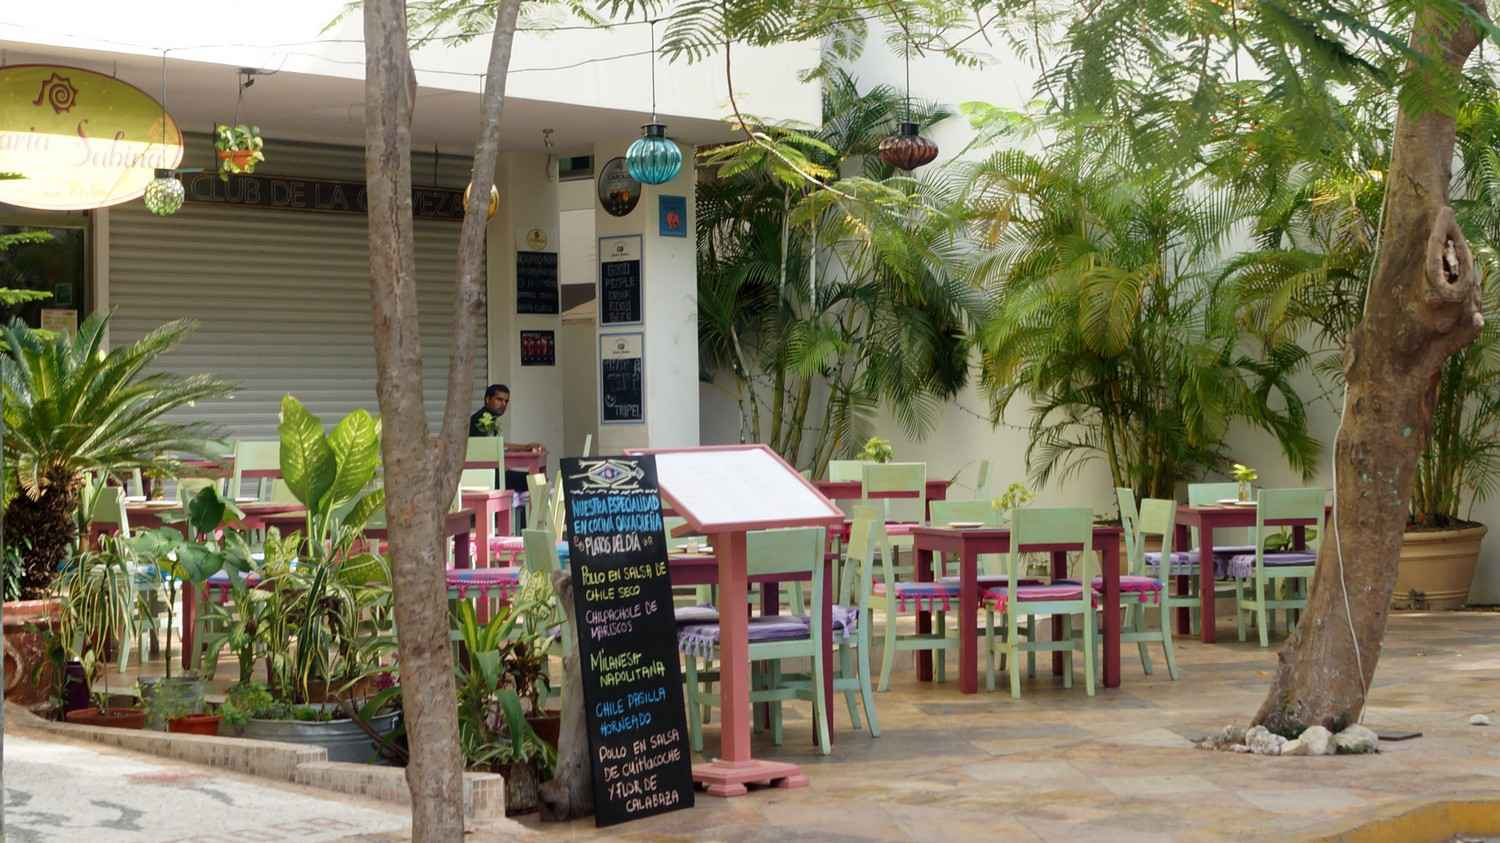 A small outdoor restaurant in downtown Playa Del Carmen serving healthy food.